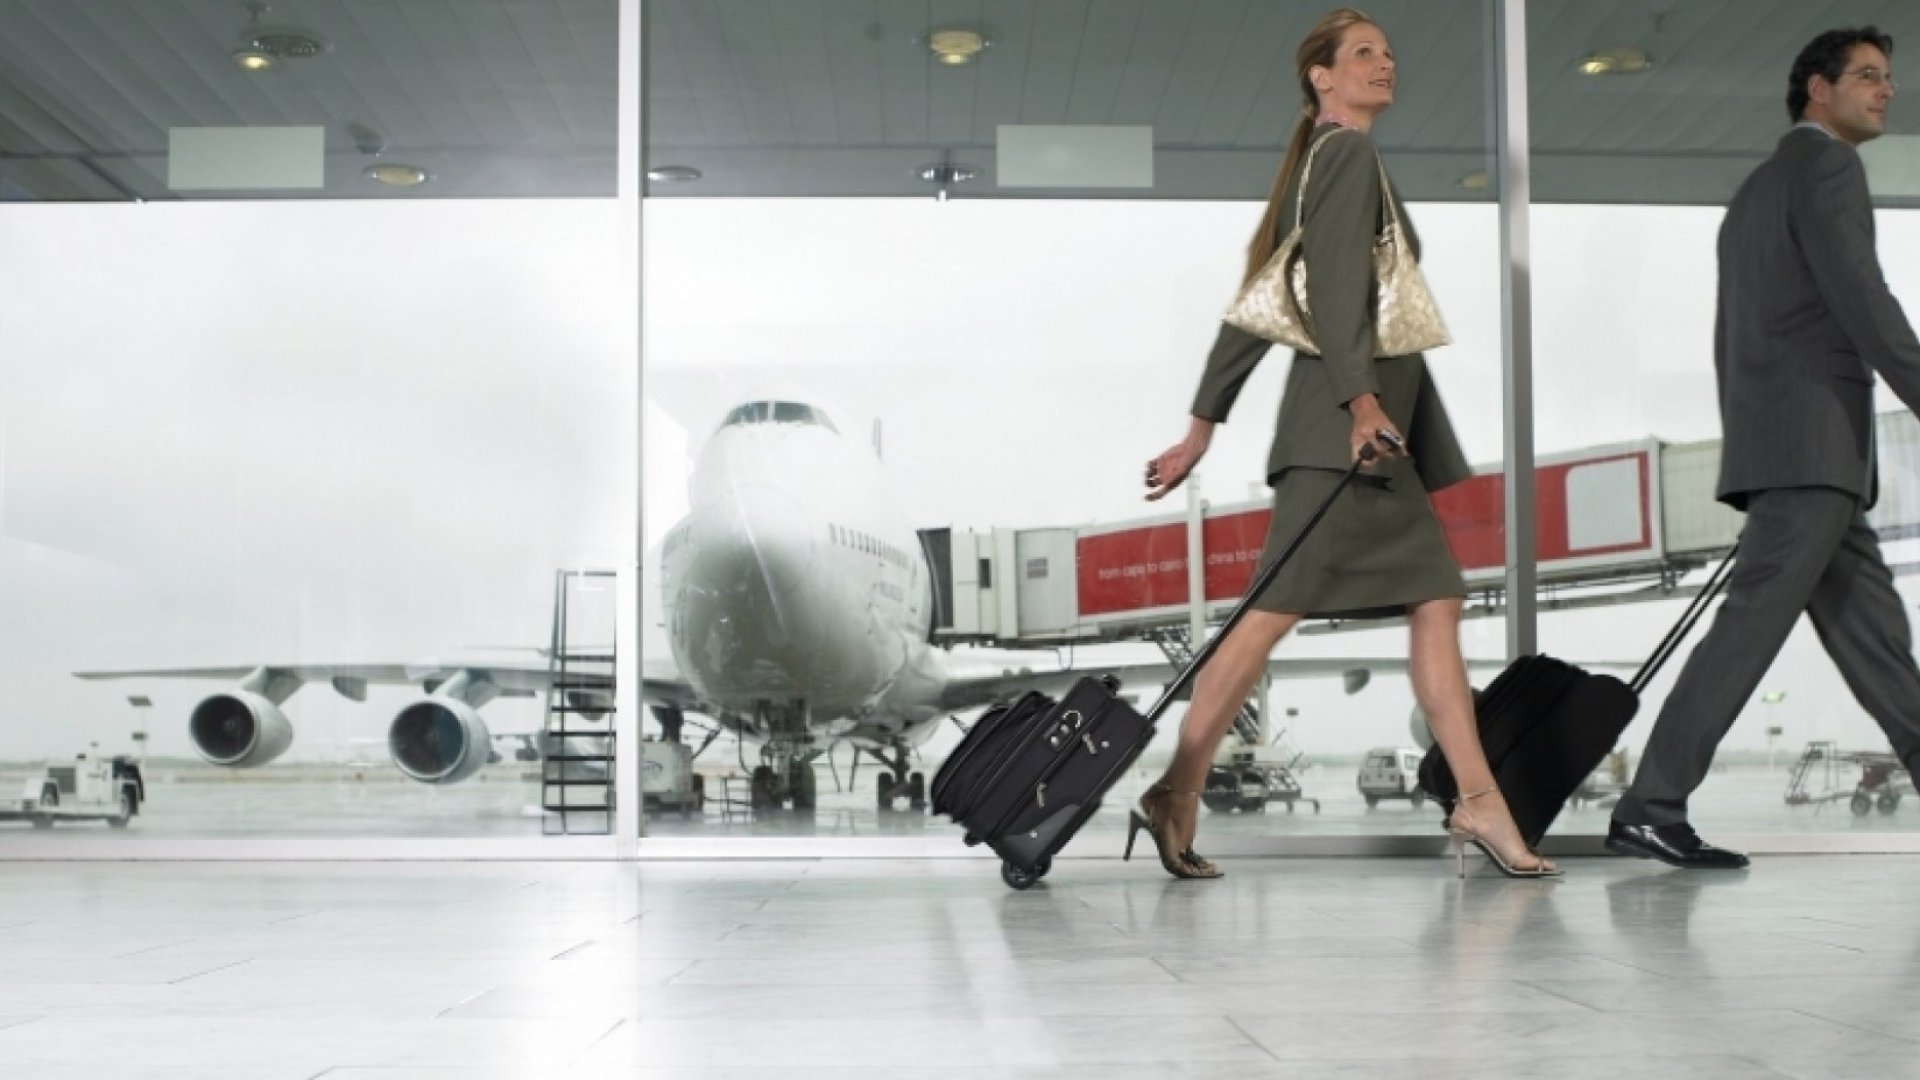 Travelling Stressful? It Doesn't Have To Be